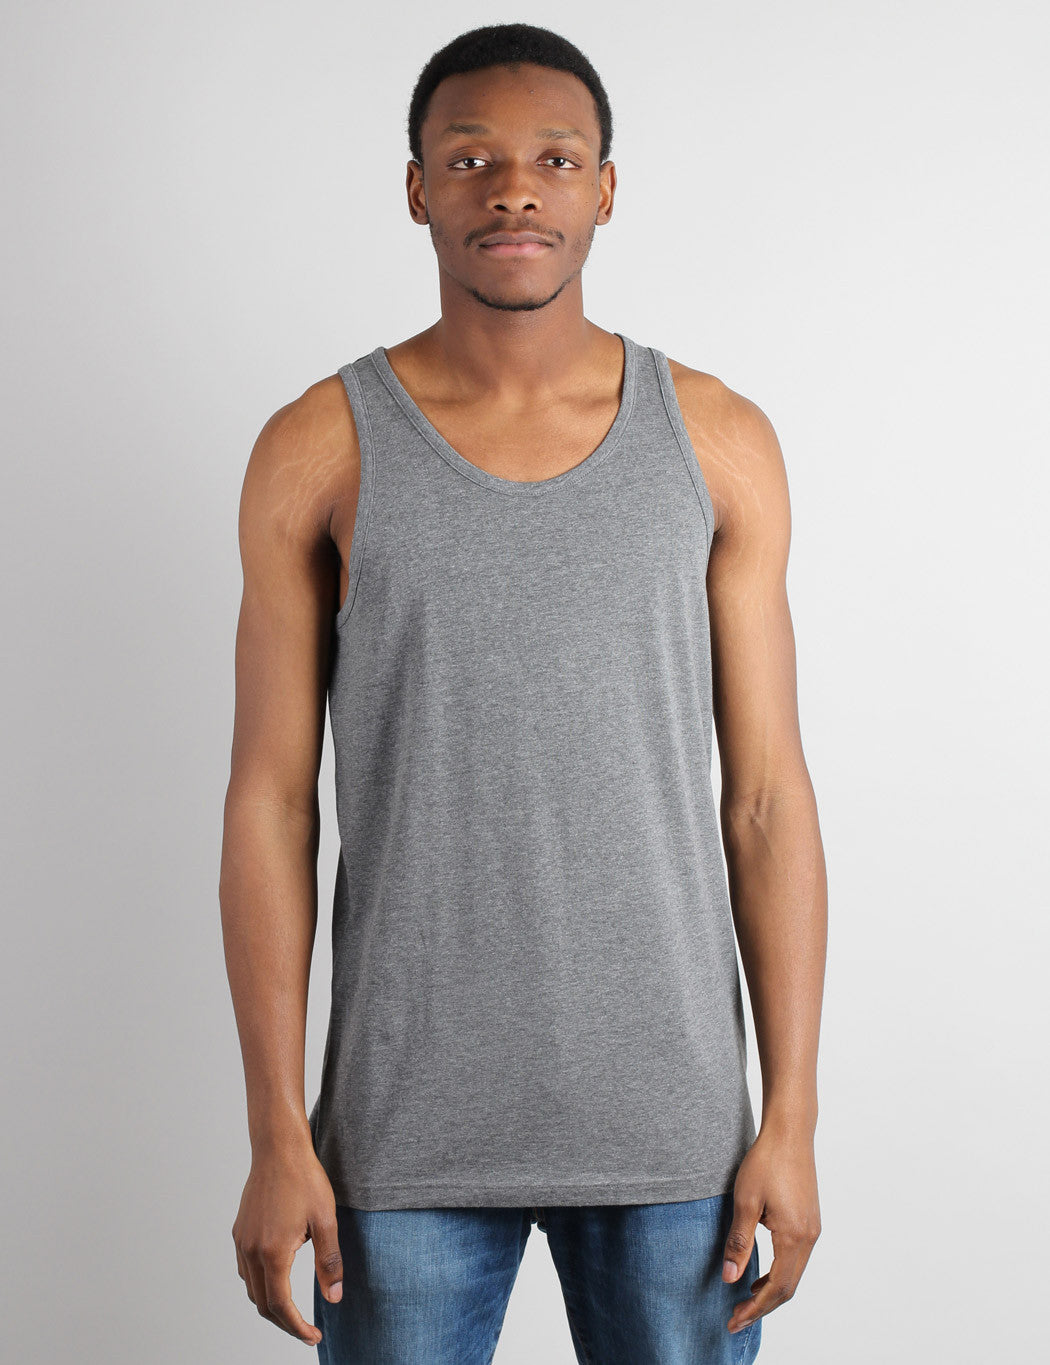 Dickies Vest - Heather Grey - Heather Grey / XL